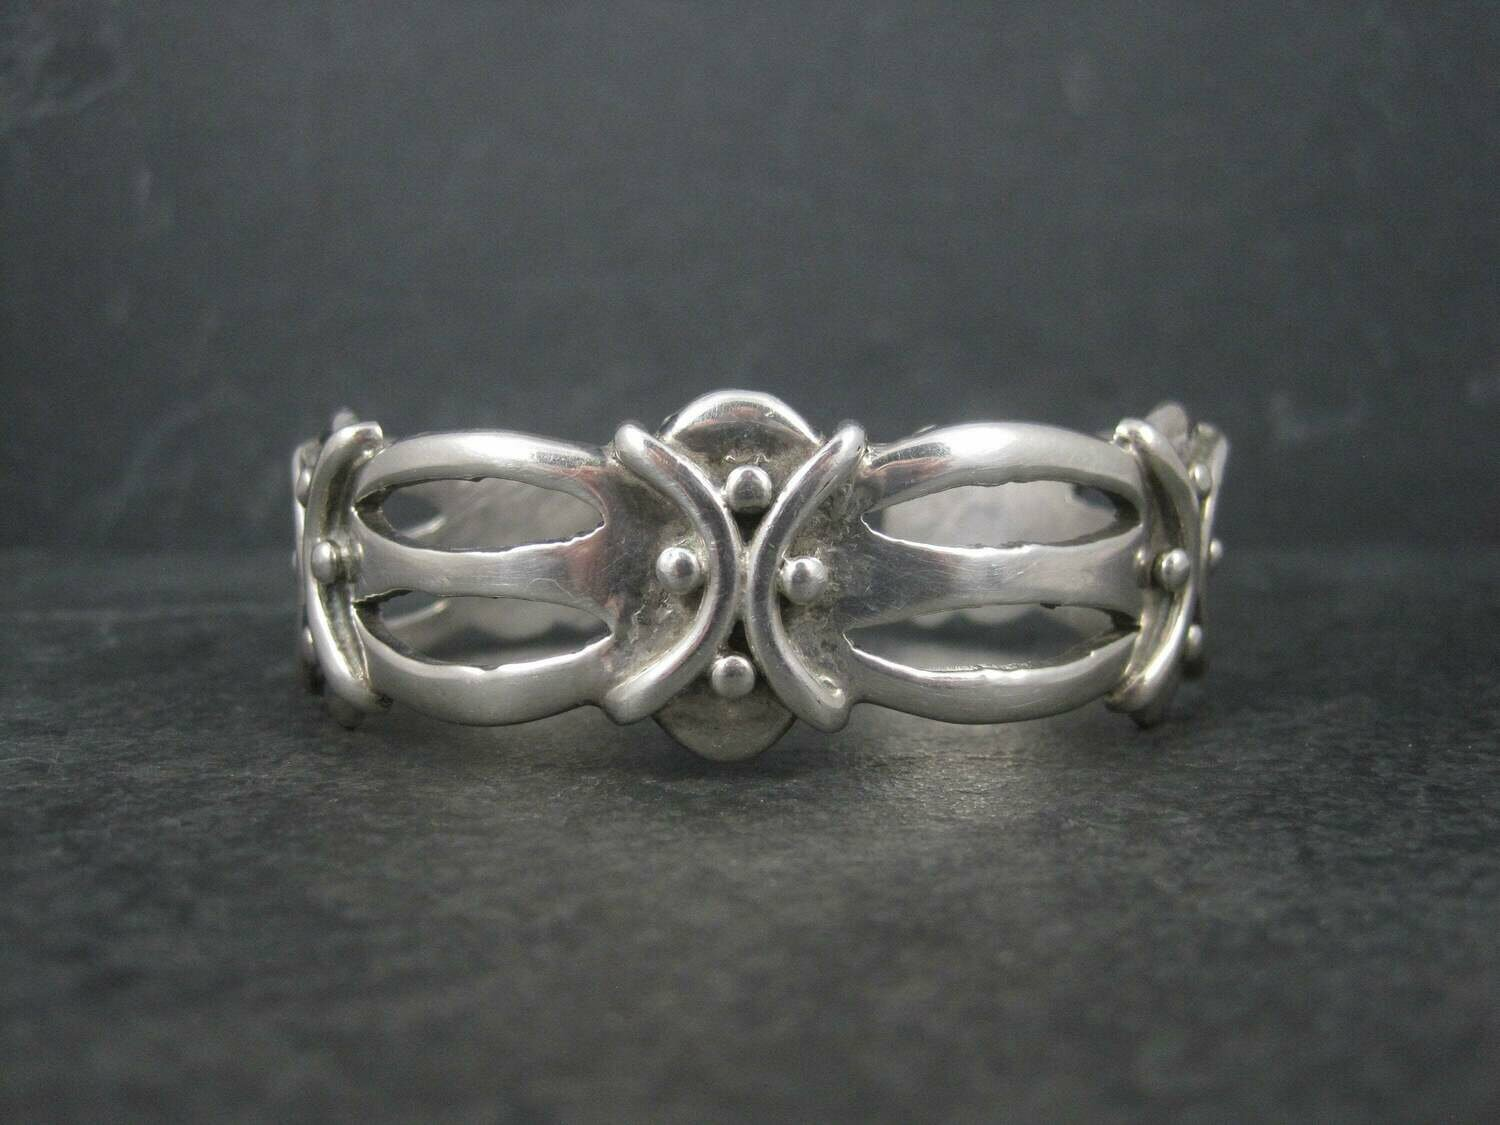 Vintage Mexican 980 Sterling Silver Cuff Bracelet 6.5 Inches